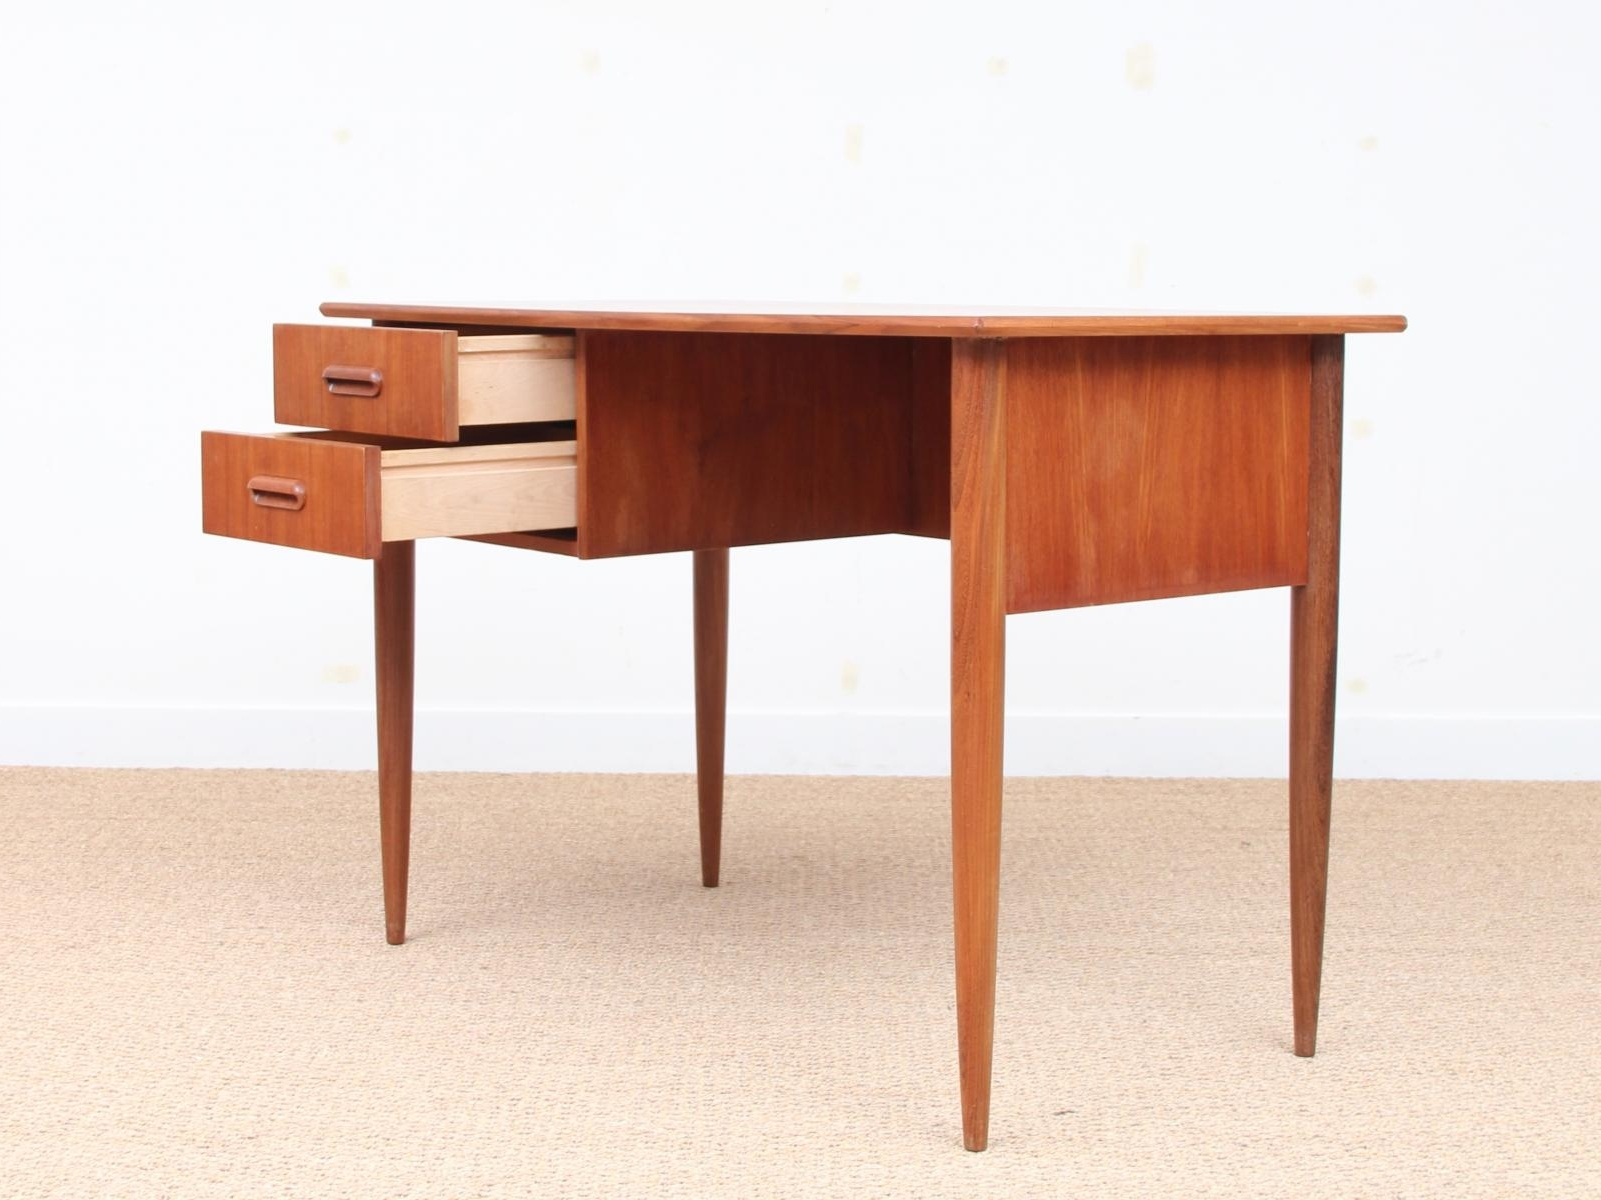 Popular Mid Century Small Desk In Teak, 1950S For Sale At Pamono Pertaining To Teak Computer Desks (View 7 of 20)